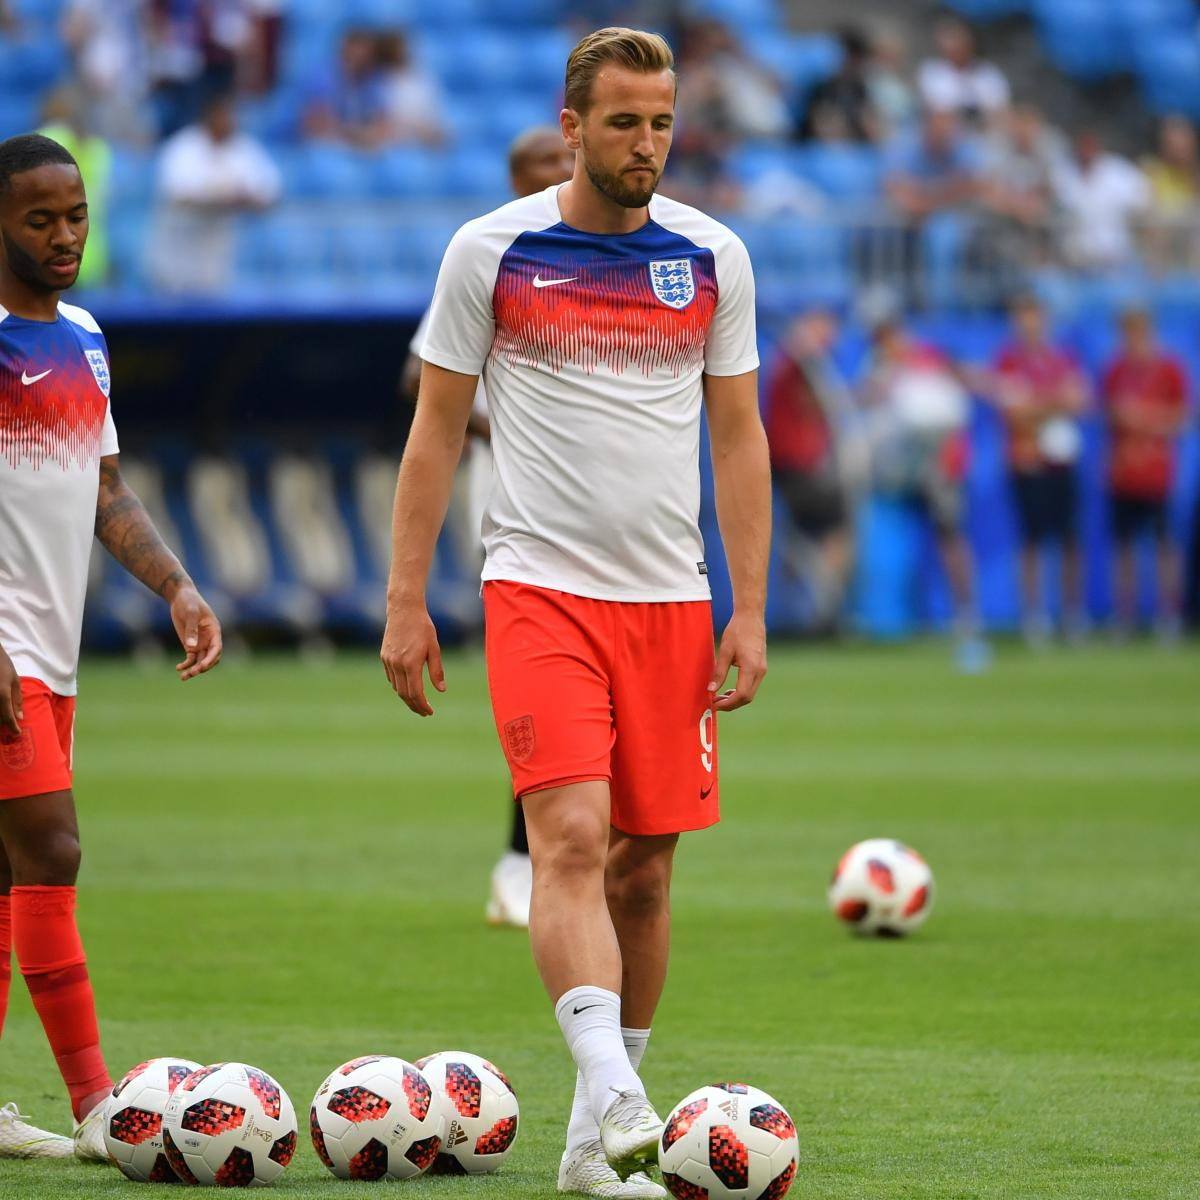 World Cup 2018: Live-Stream Schedule for Final Semi-Final Matchup